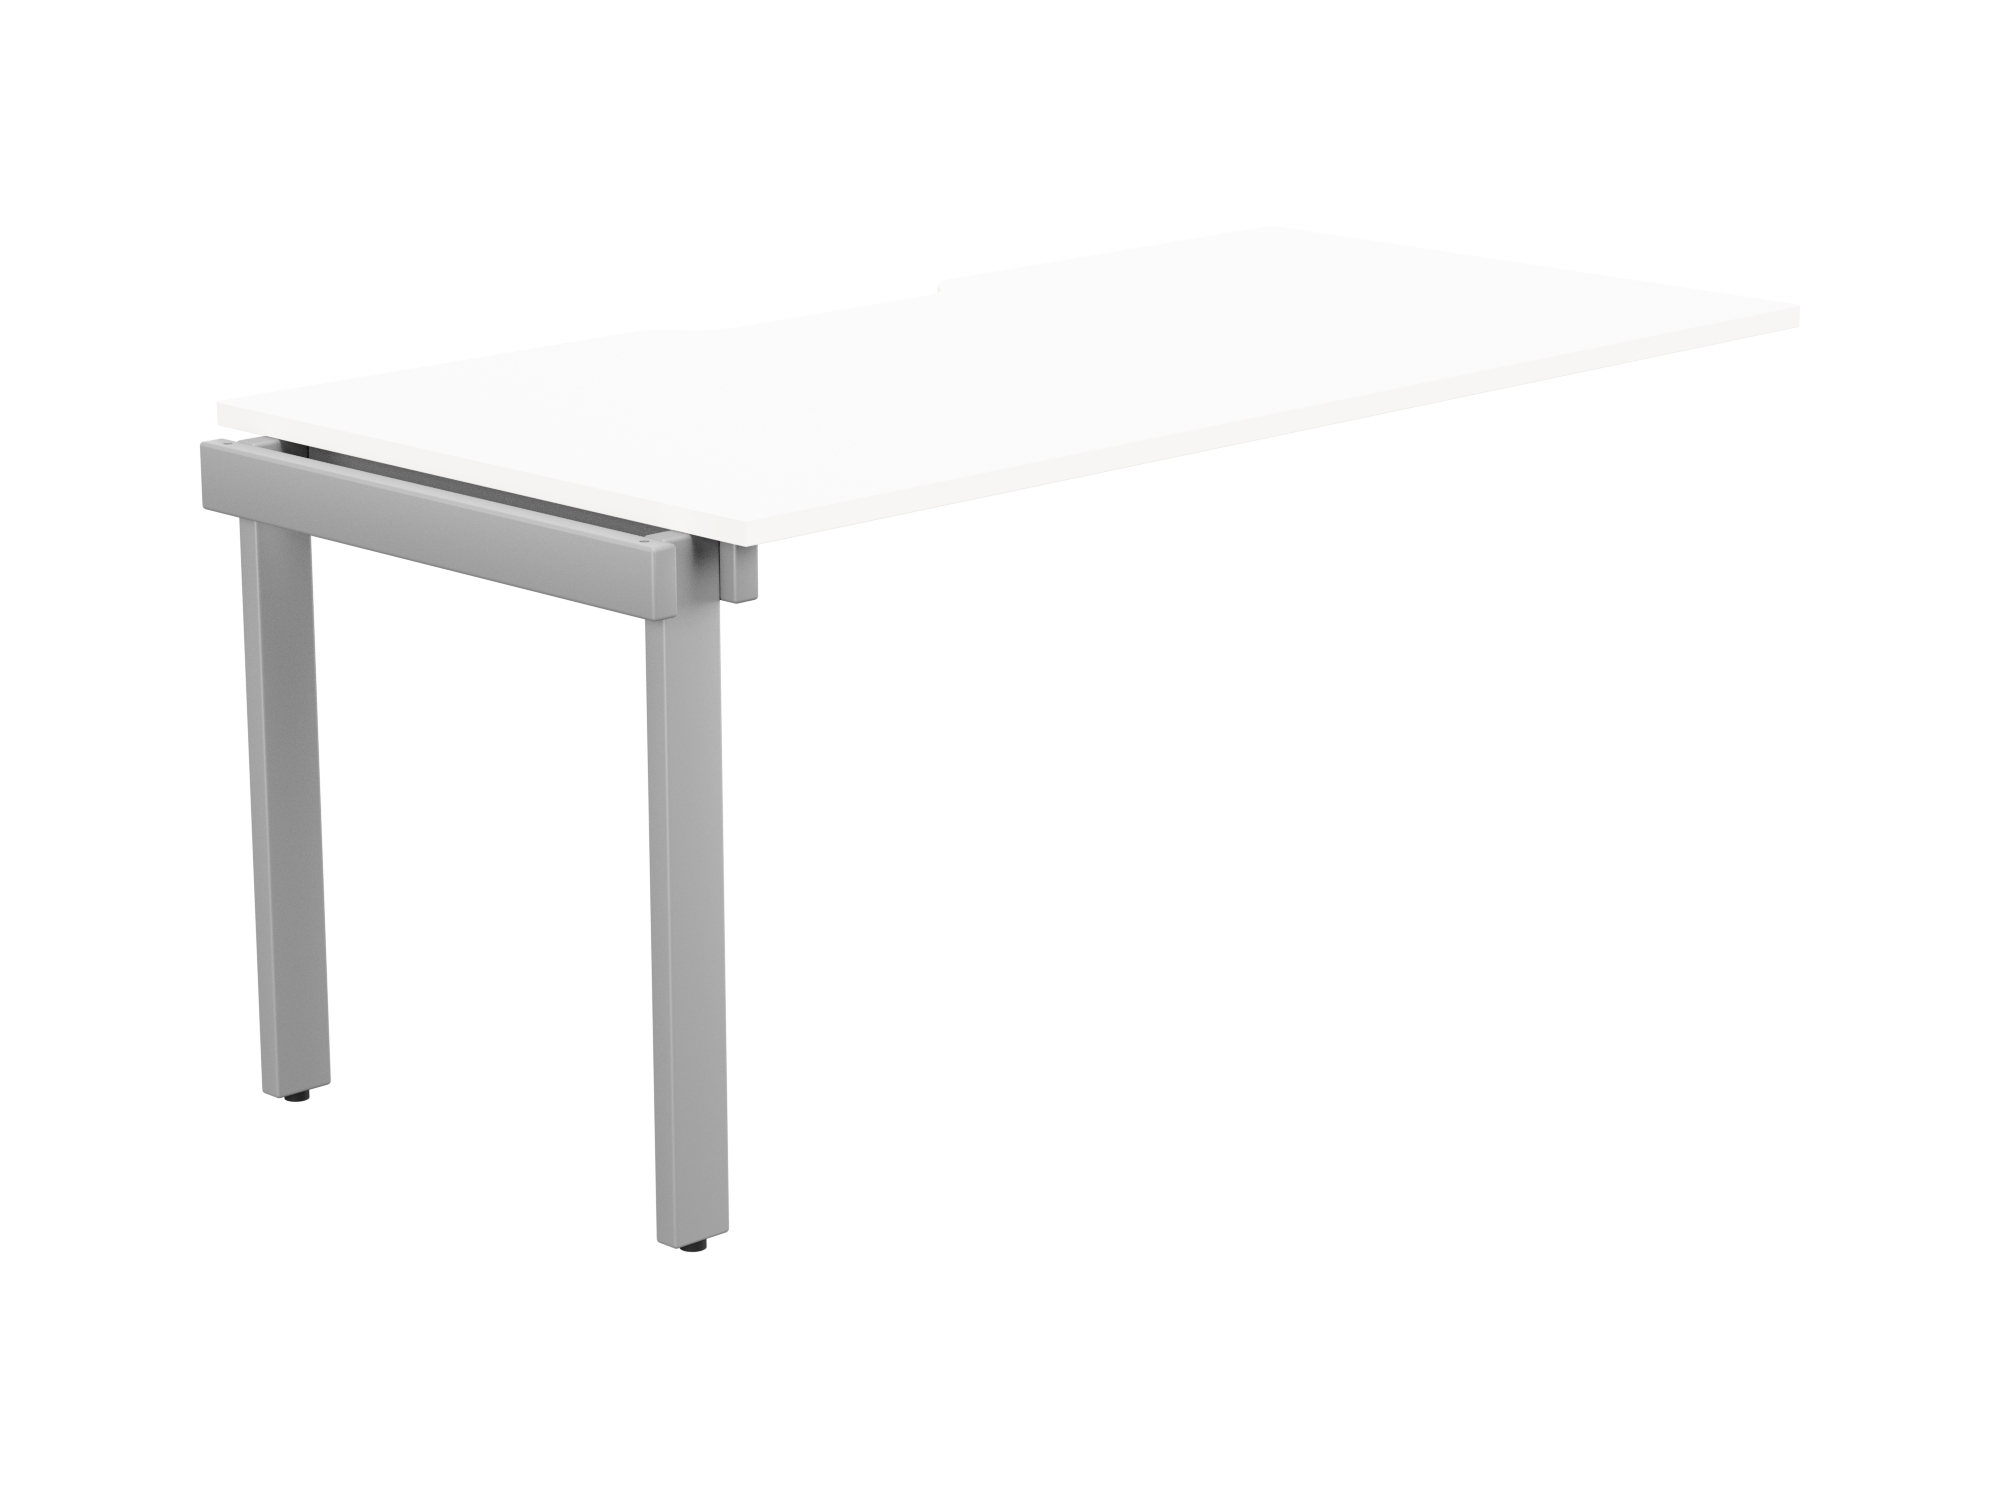 Switch 1 Person Bench Add-On Scallop Top 1600 x 800 - Silver Frame / White Top